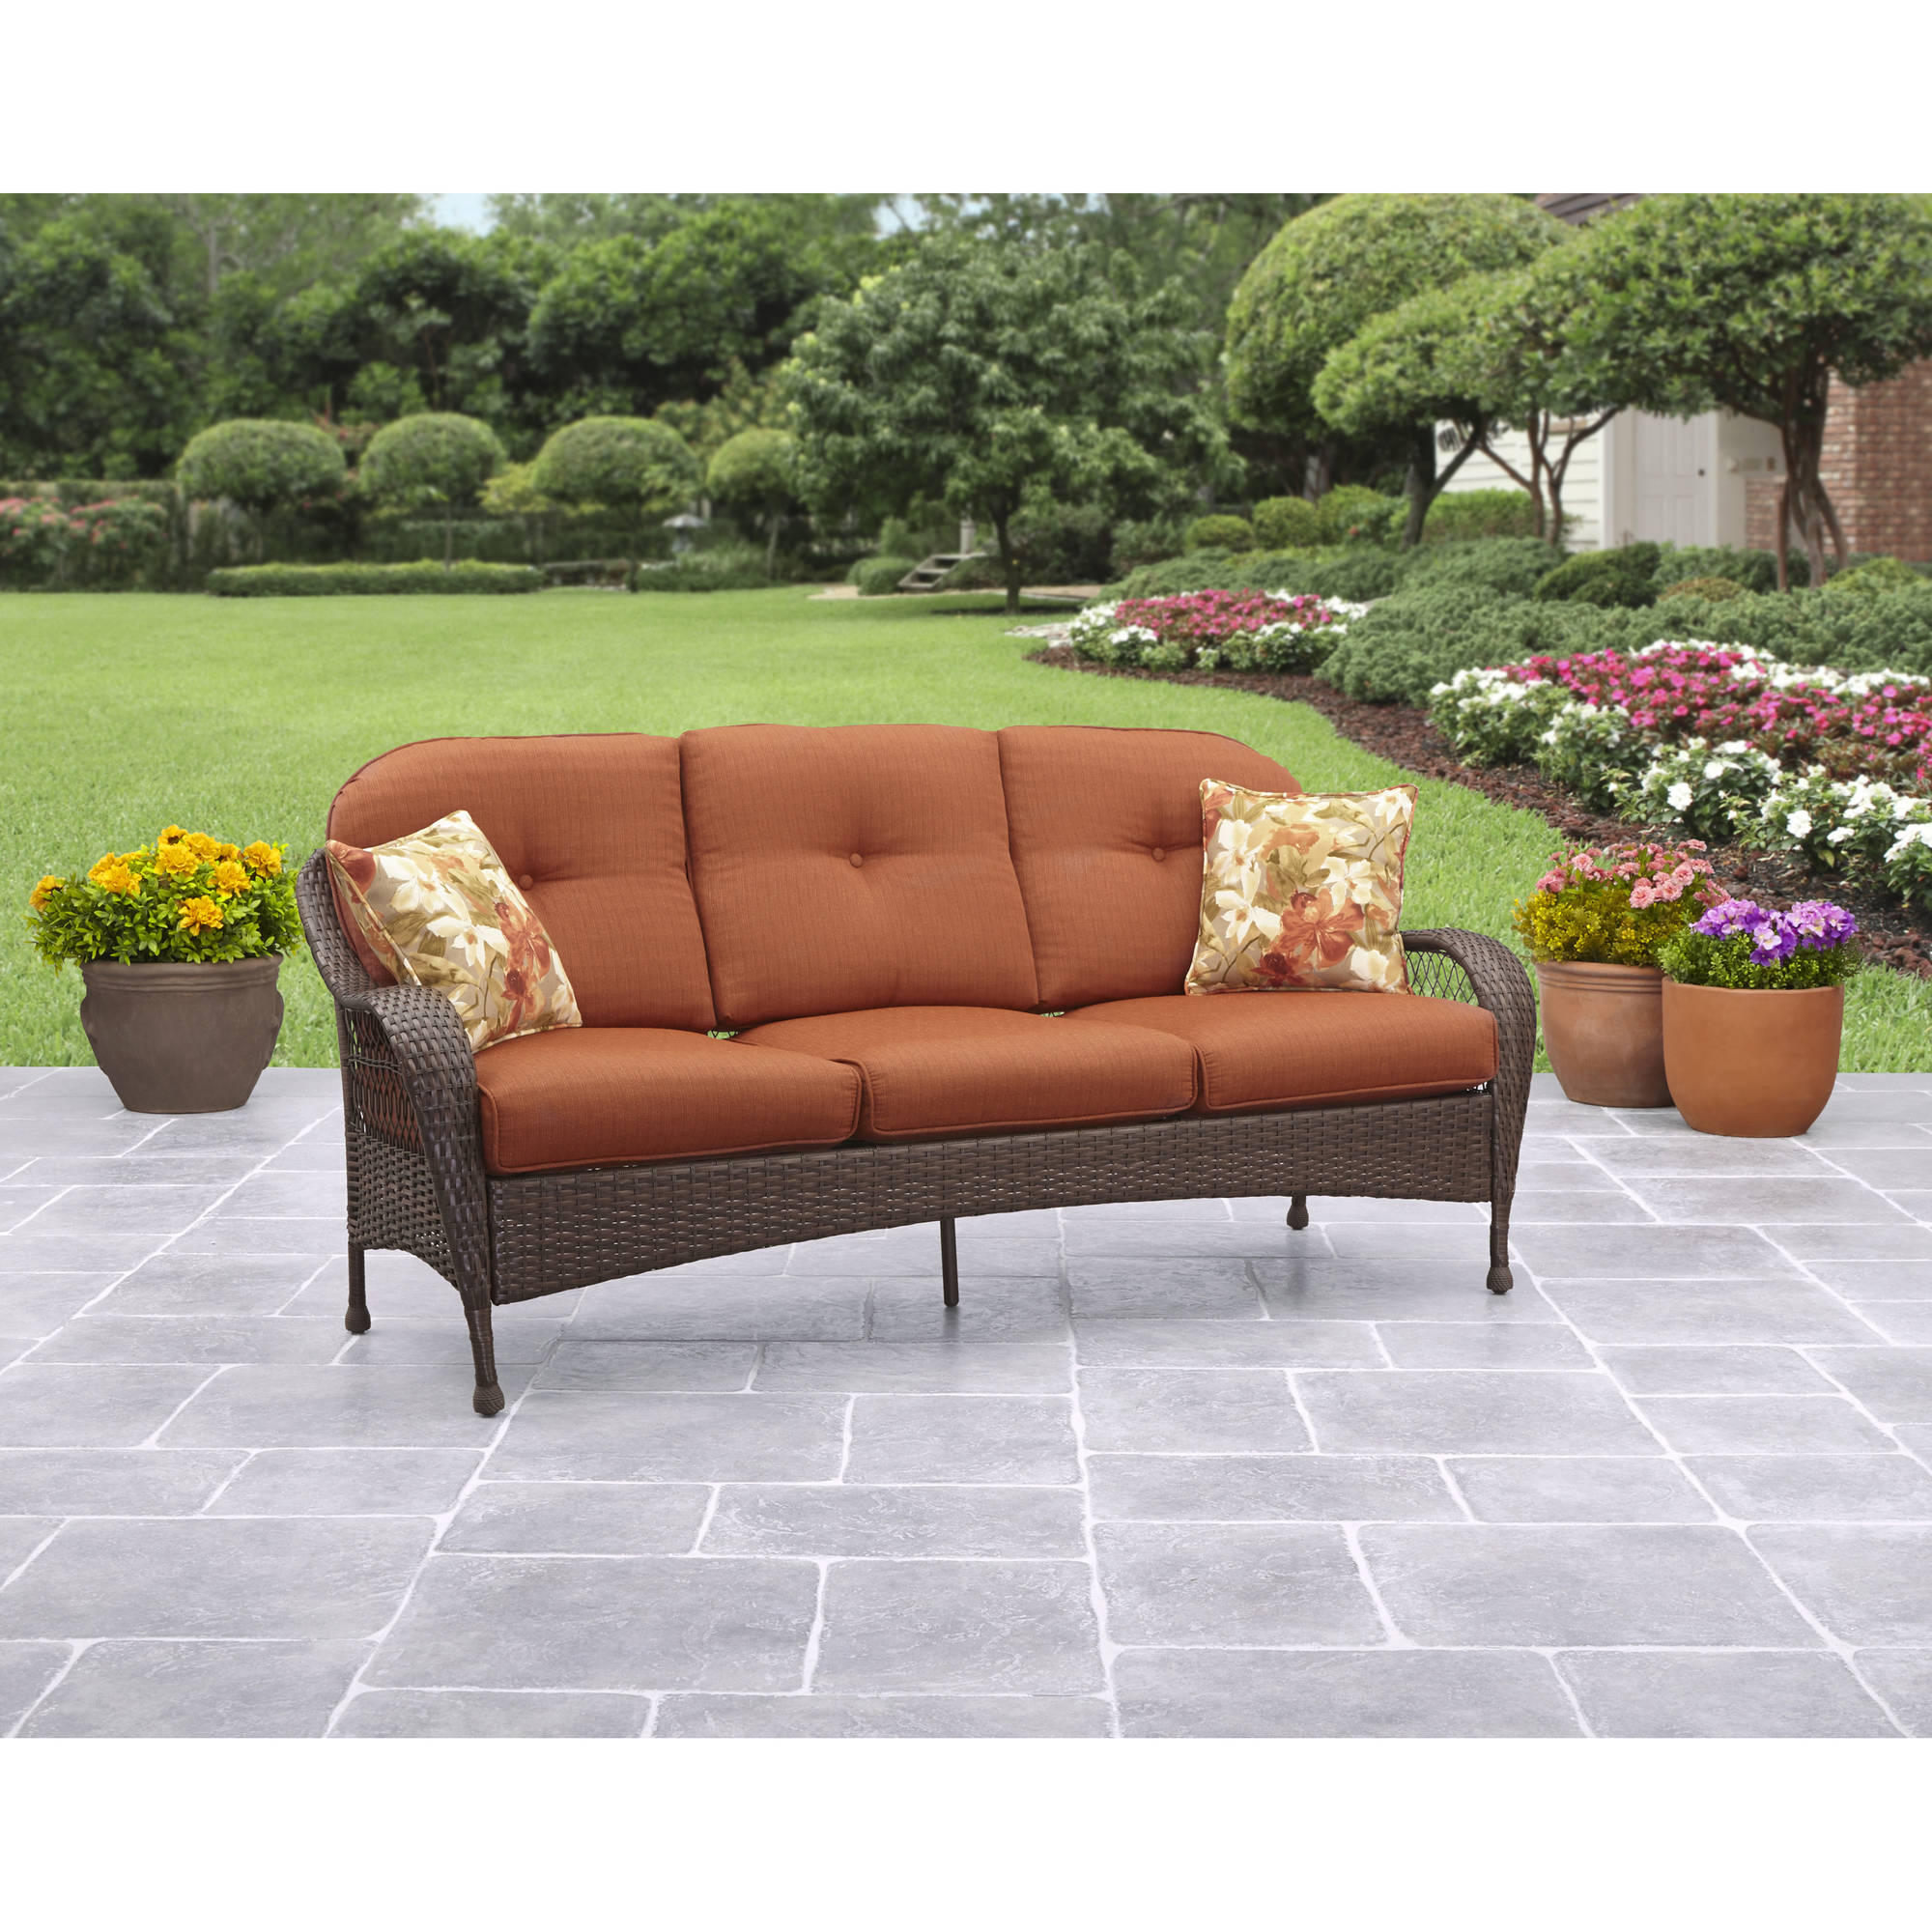 better homes and gardens azalea ridge outdoor sofa, seats 3 - walmart.com YPWGMJS